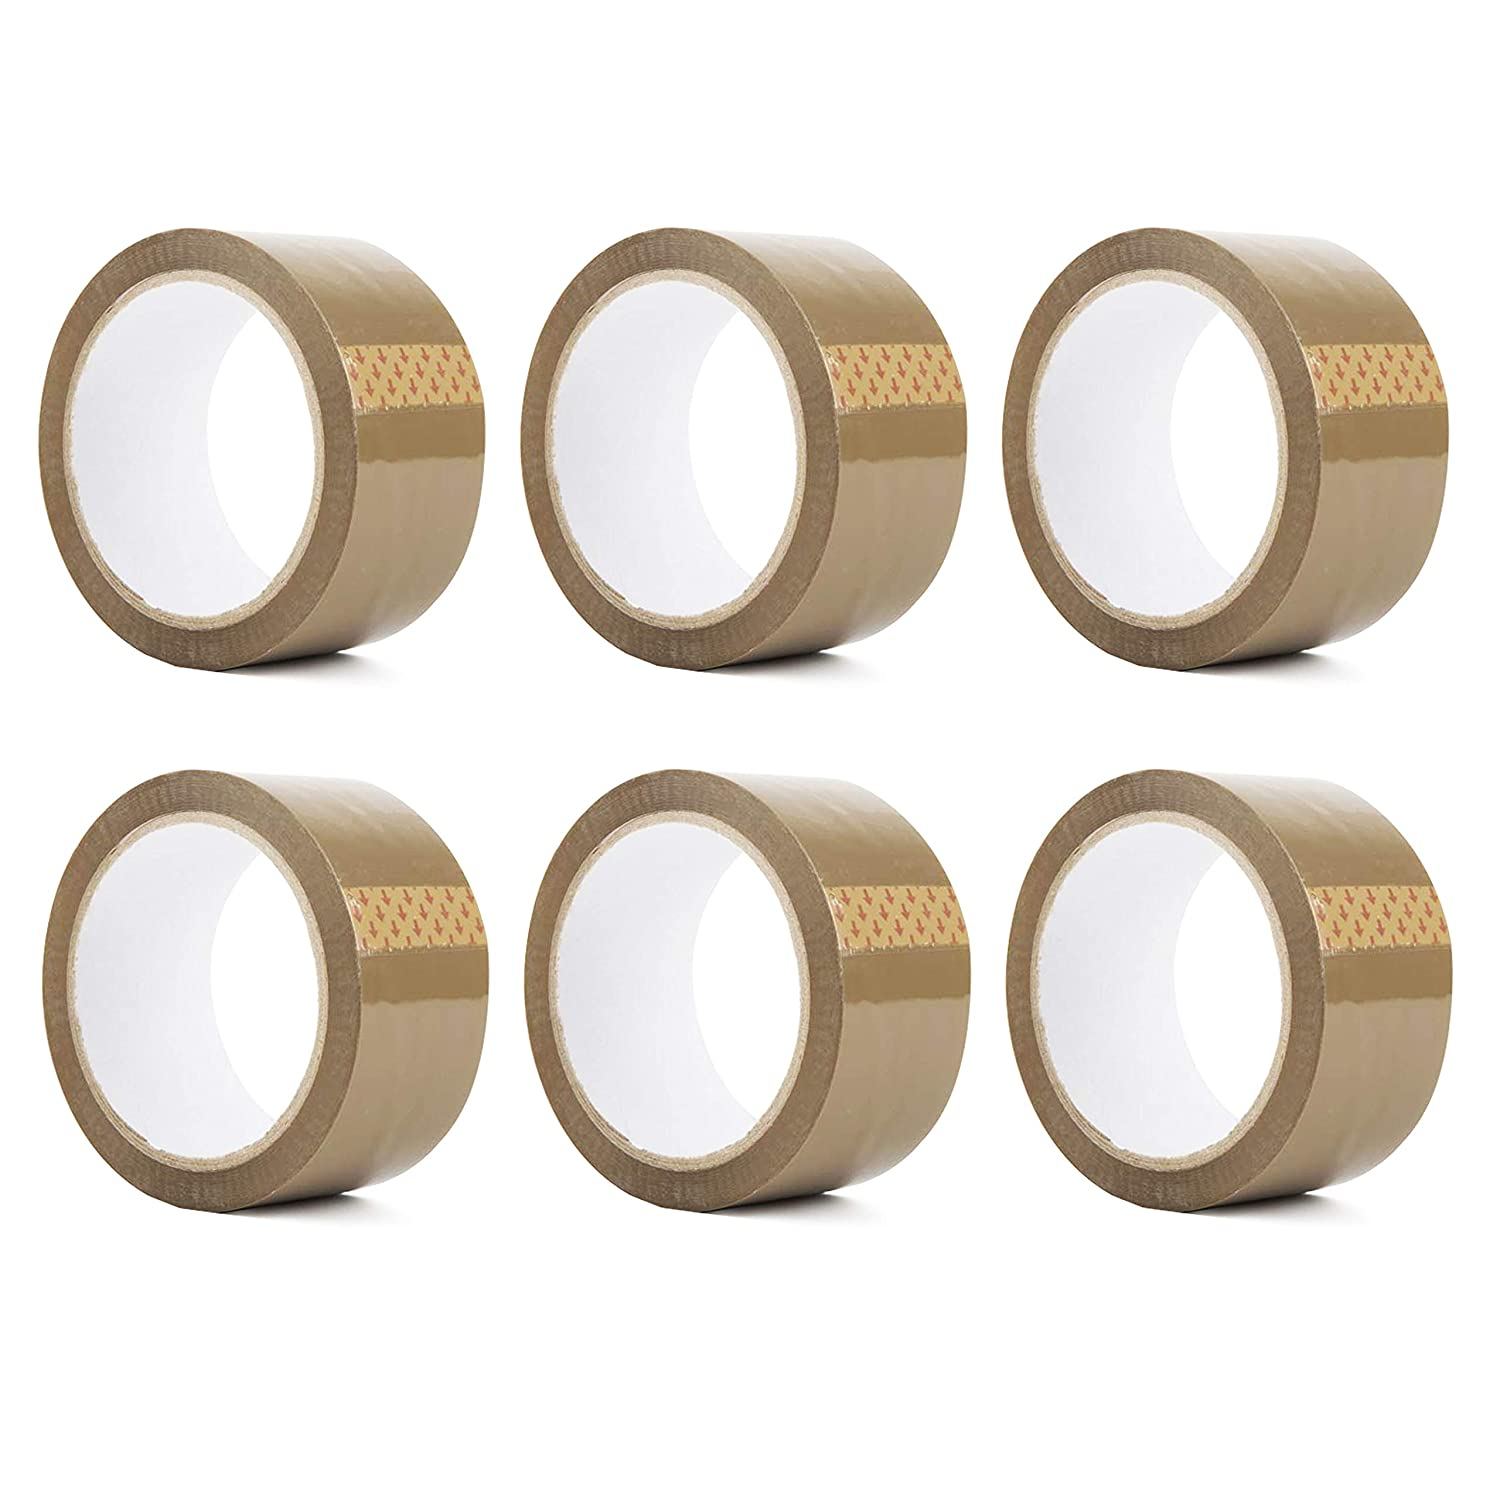 6 DARK BROWN//ROLL BUFF PARCEL PACKING TAPE CARTON SEALING 50mm X 66M